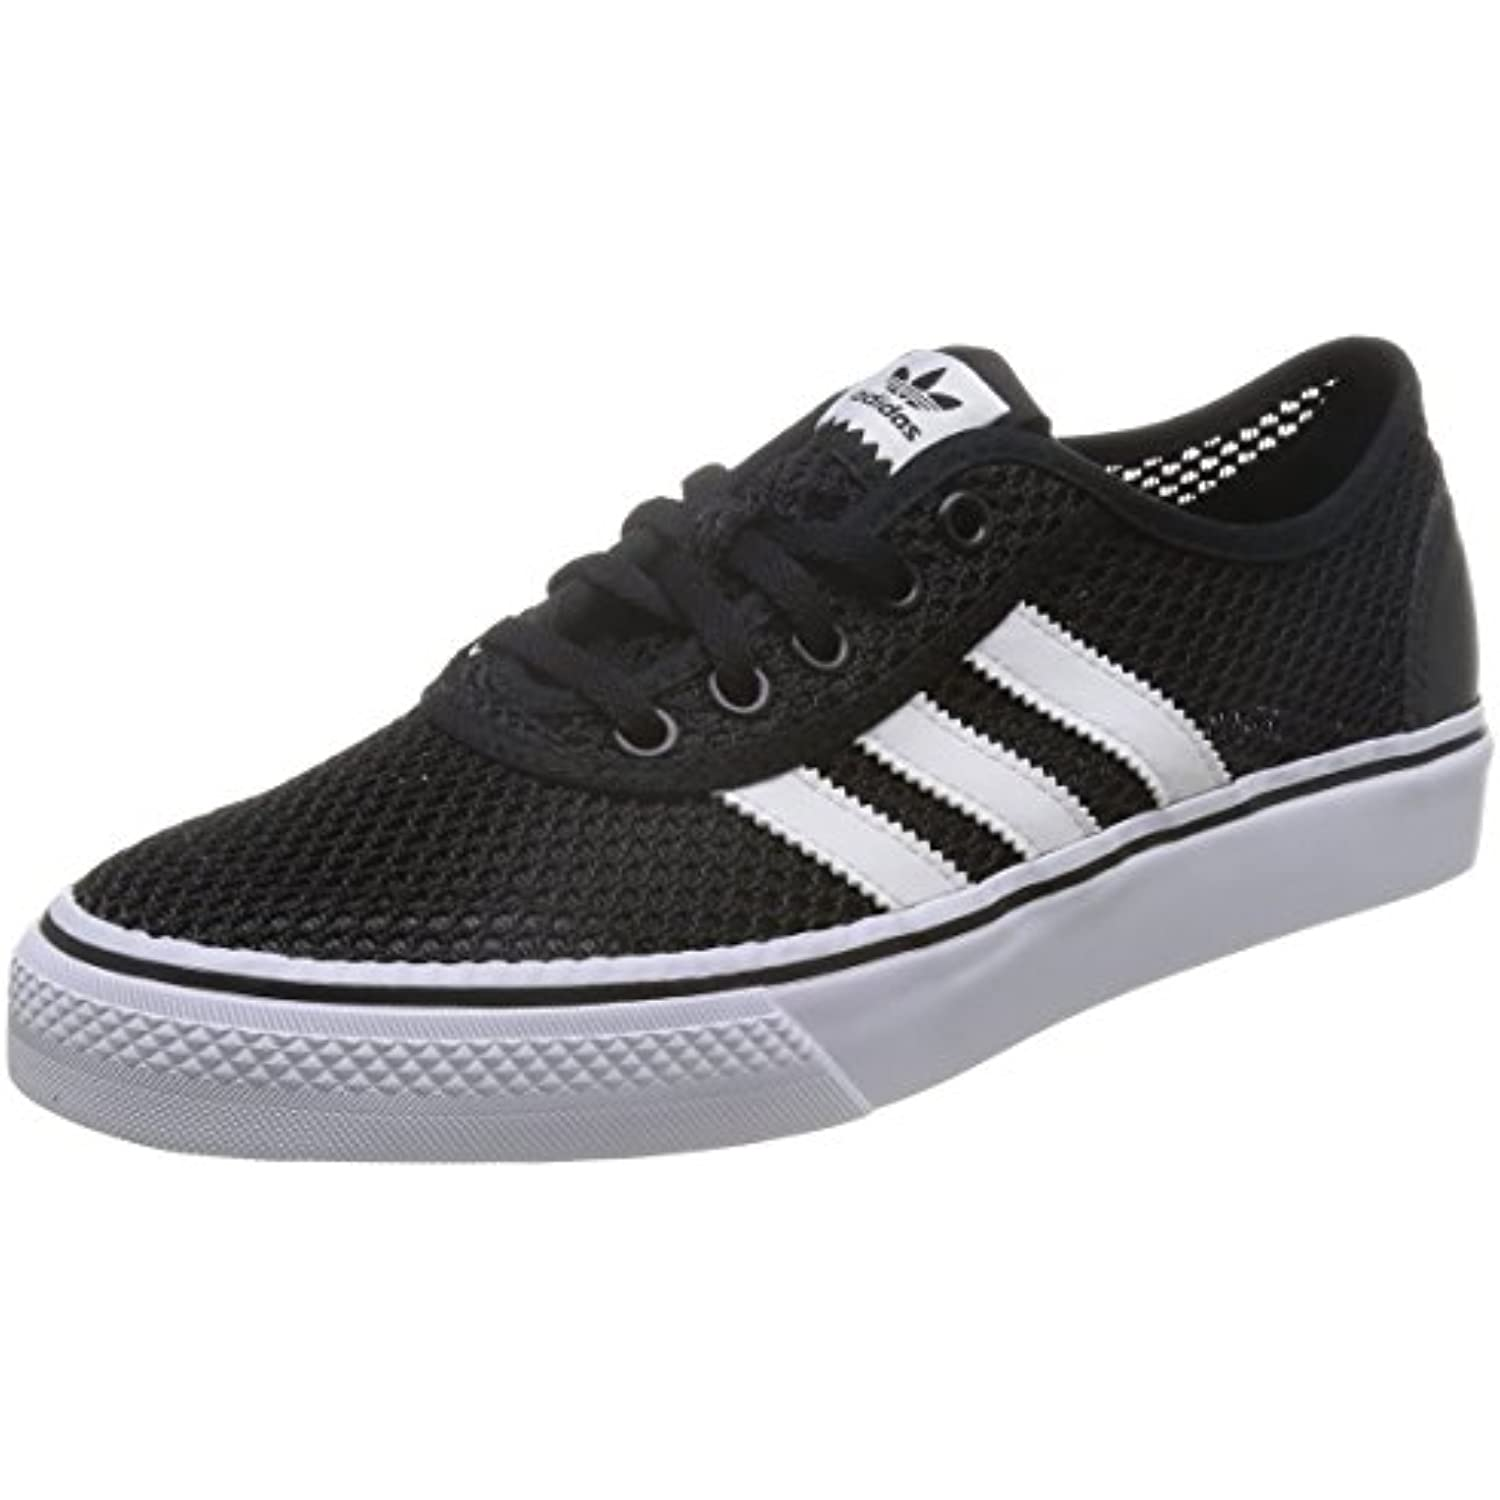 Adidas Adiease Clima, Baskets Basses Homme - - B017W35VB0 - Homme 2dfcde